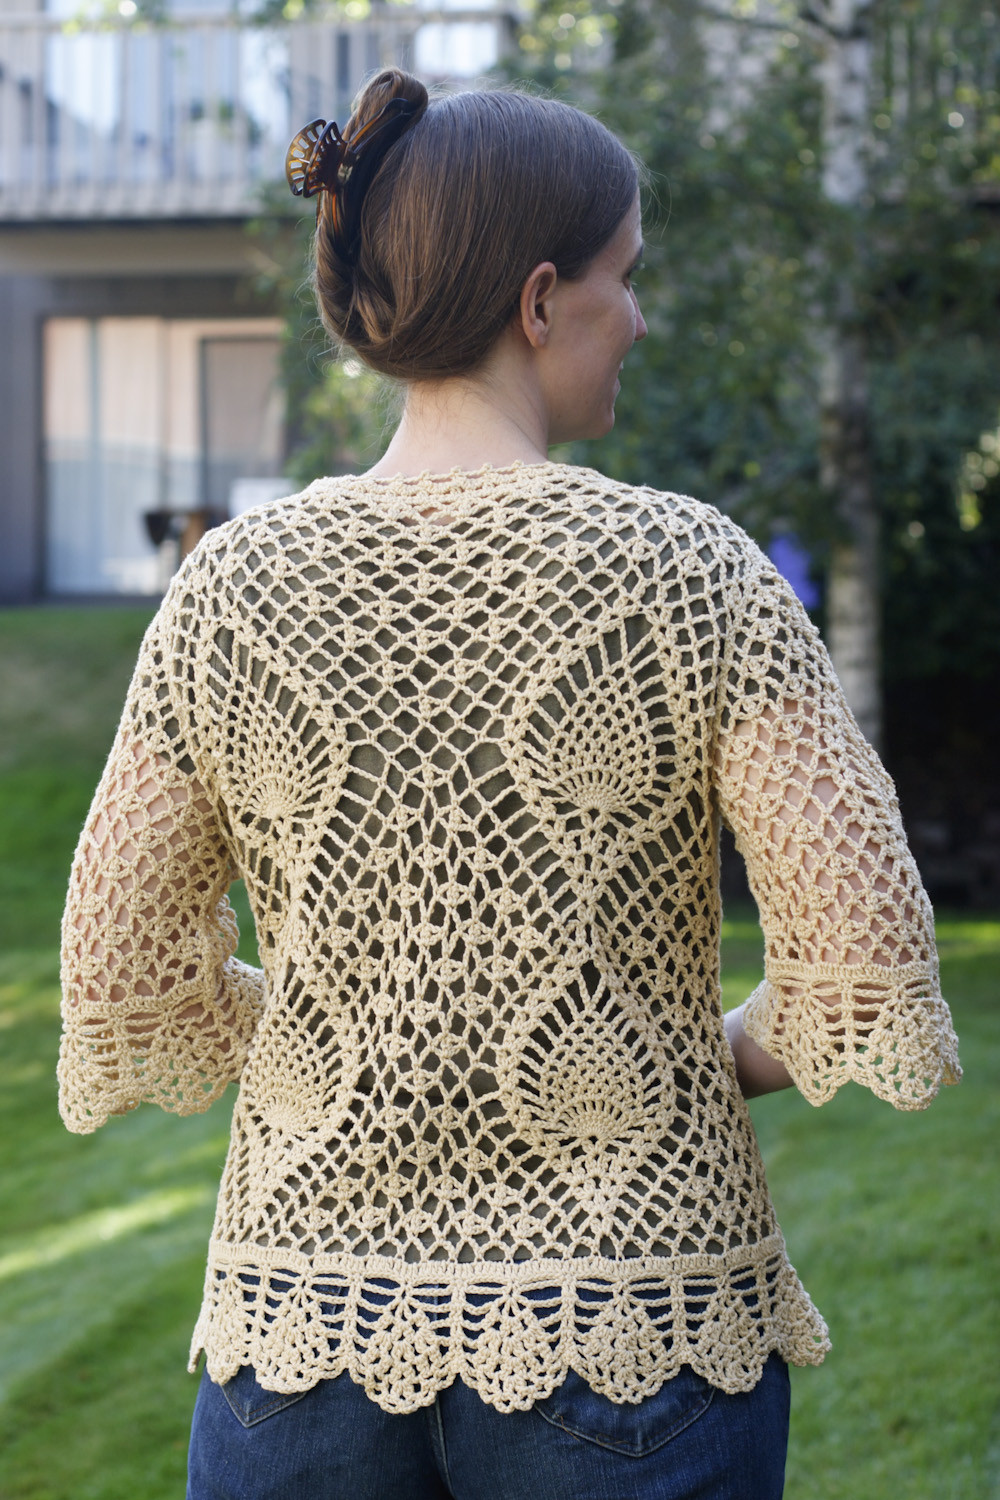 Crochet Sweater Pattern Free New Crochet Pattern Sweater Woman Of Unique 50 Images Crochet Sweater Pattern Free